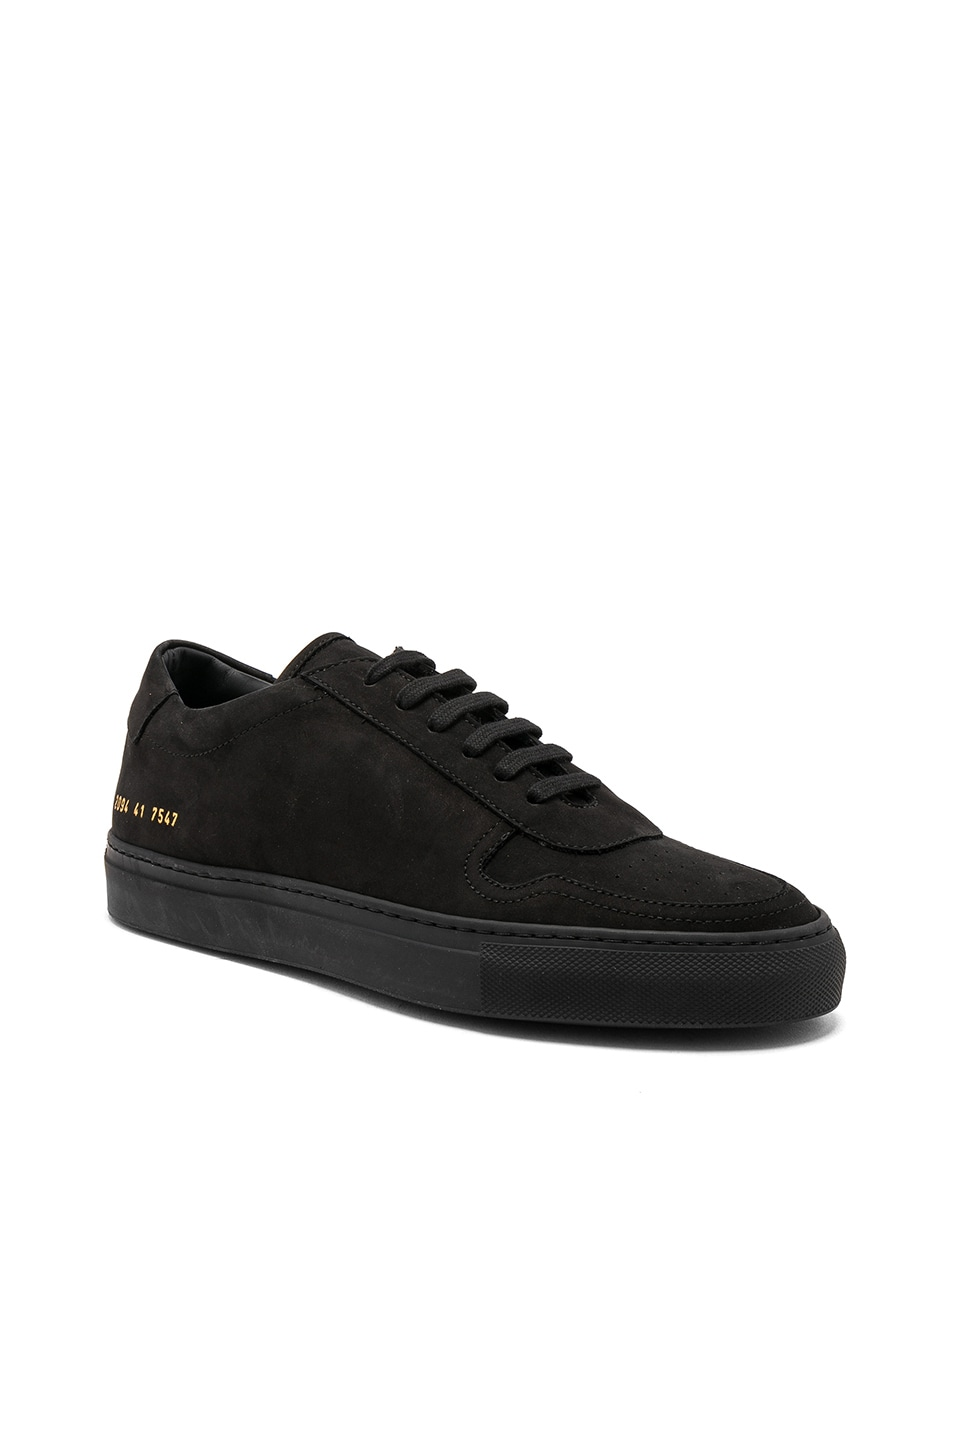 Bball Leather Sneakers - BlackCommon Projects UEb00Q